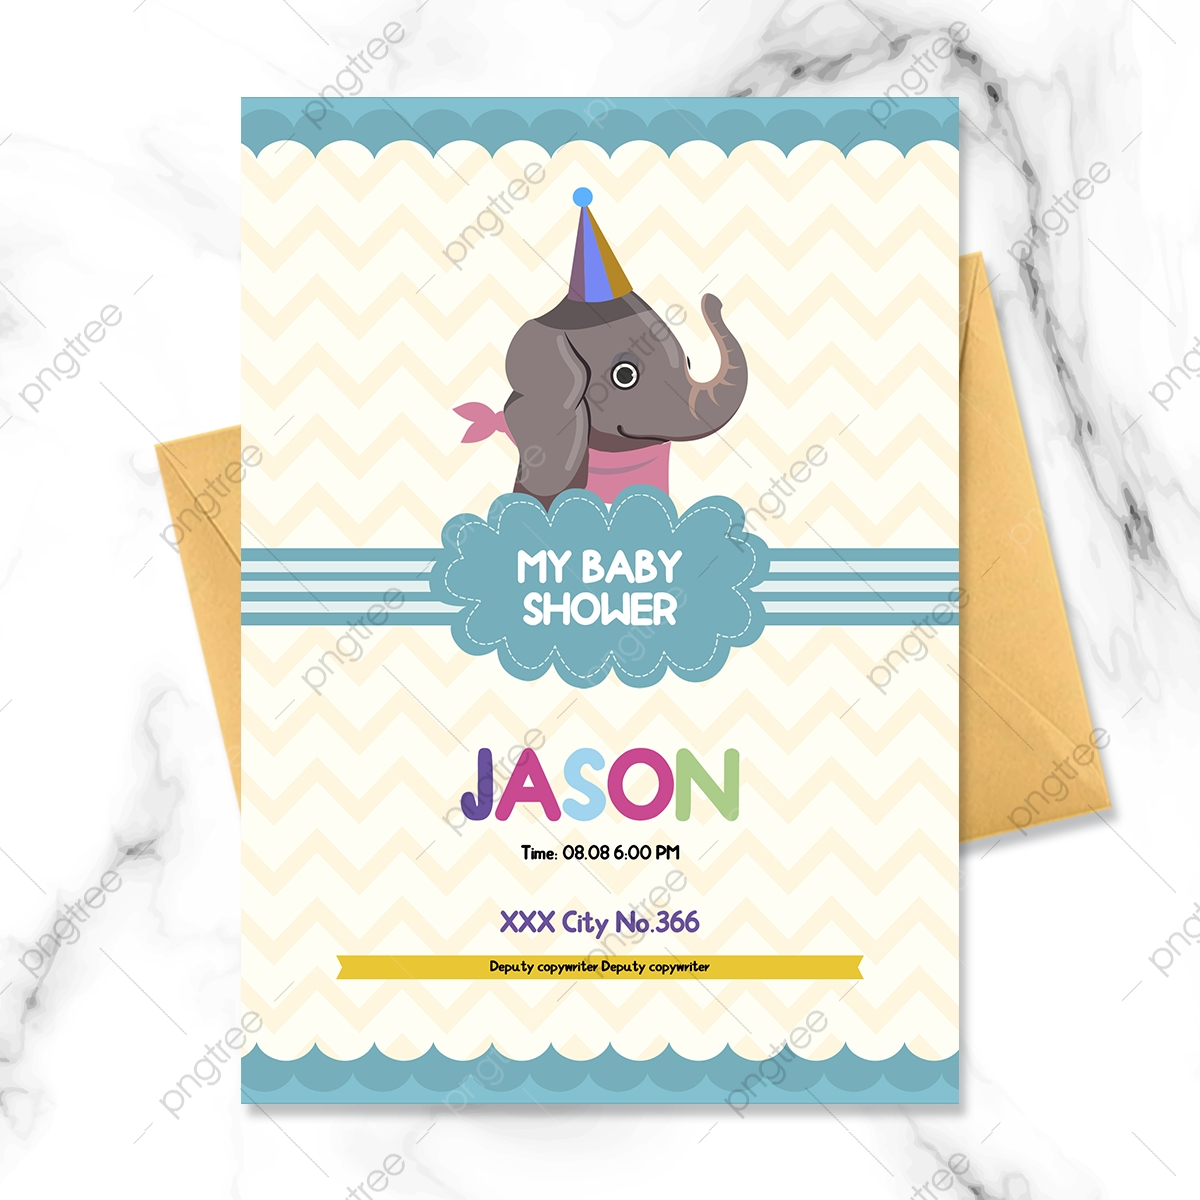 Fresh Cartoon Colorful Baby Elephant Welcome Party Invitation Template Download On Pngtree It can be downloaded in best resolution and used for design and web design. pngtree